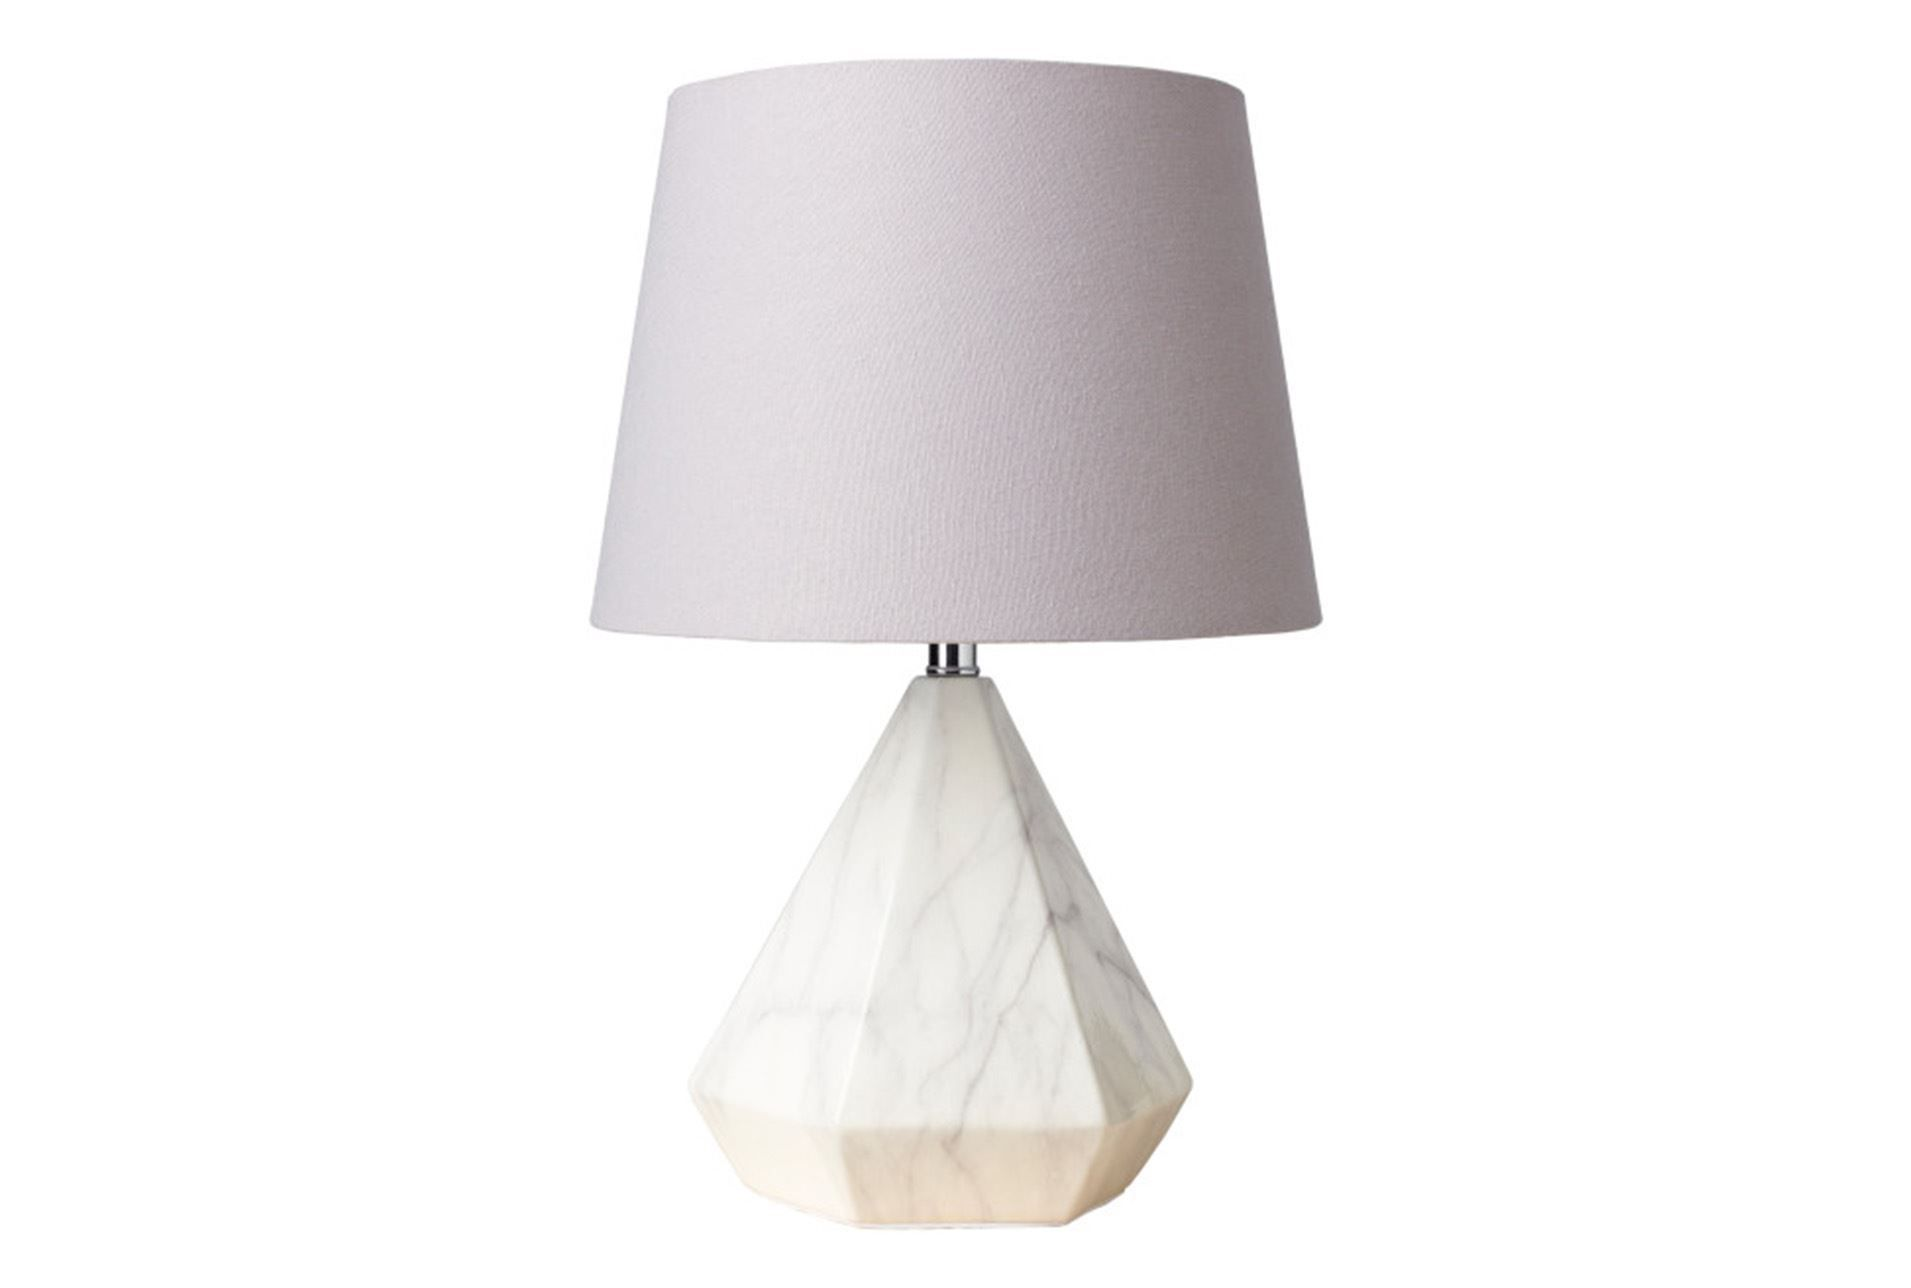 Table Lamp White Faux Marble Grey Shade Short White Table Lamp Table Lamp Contemporary Table Lamps